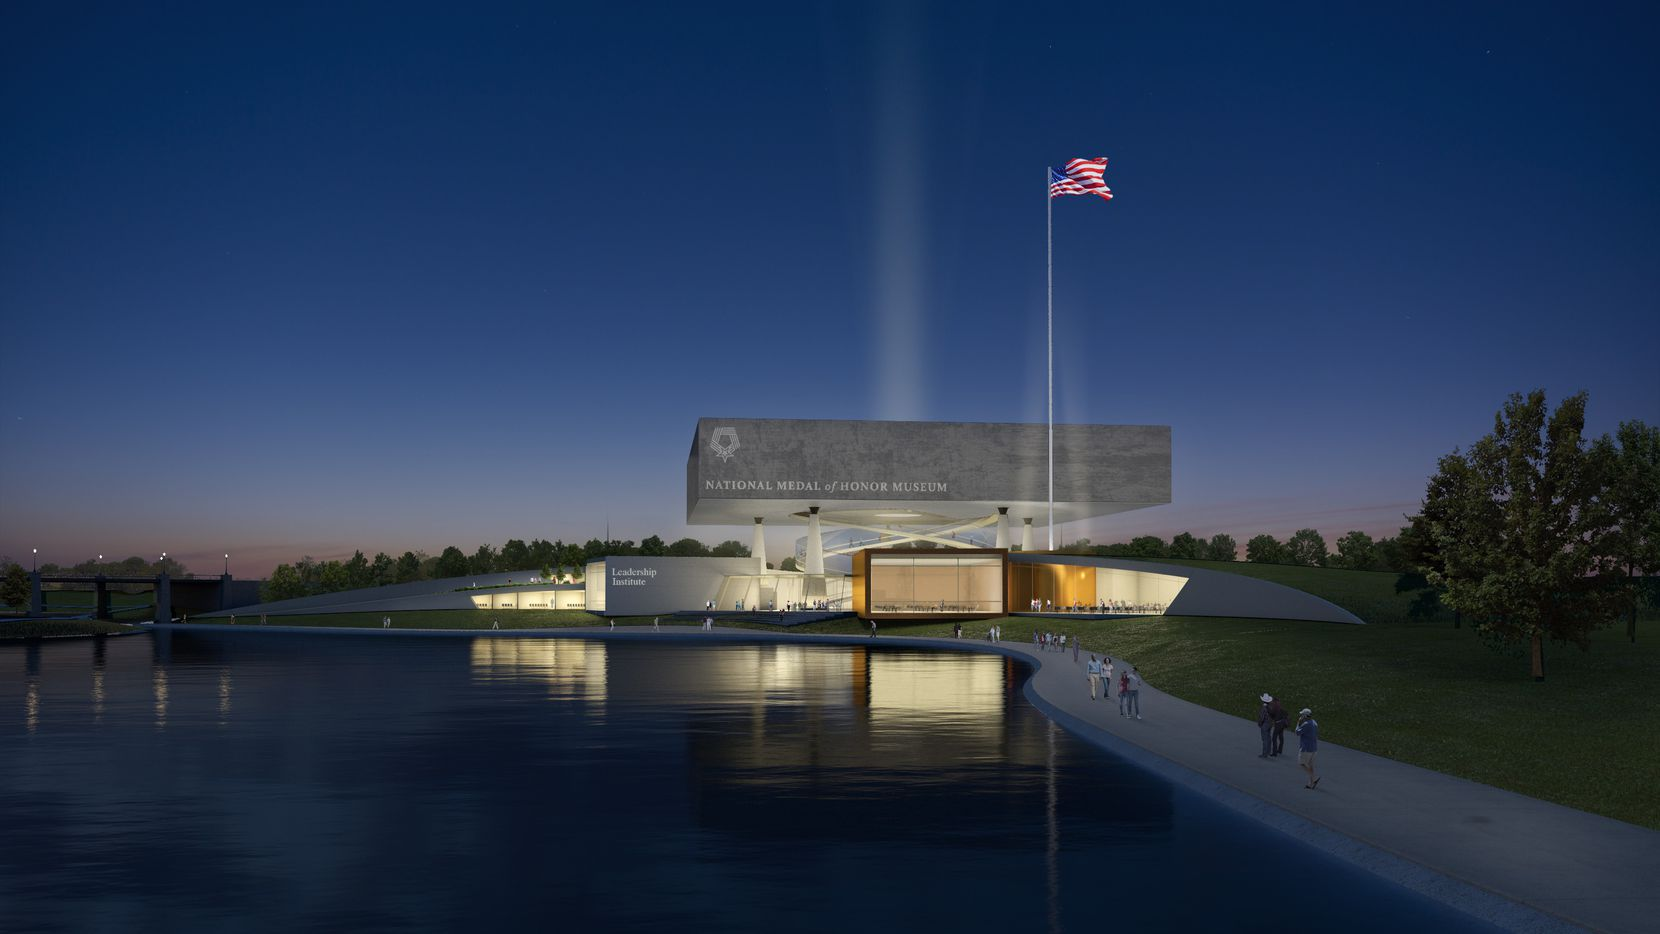 The National Medal of Honor museum, shown in a rendering, was on track to open in Arlington's entertainment district in 2024 as of October 2020.